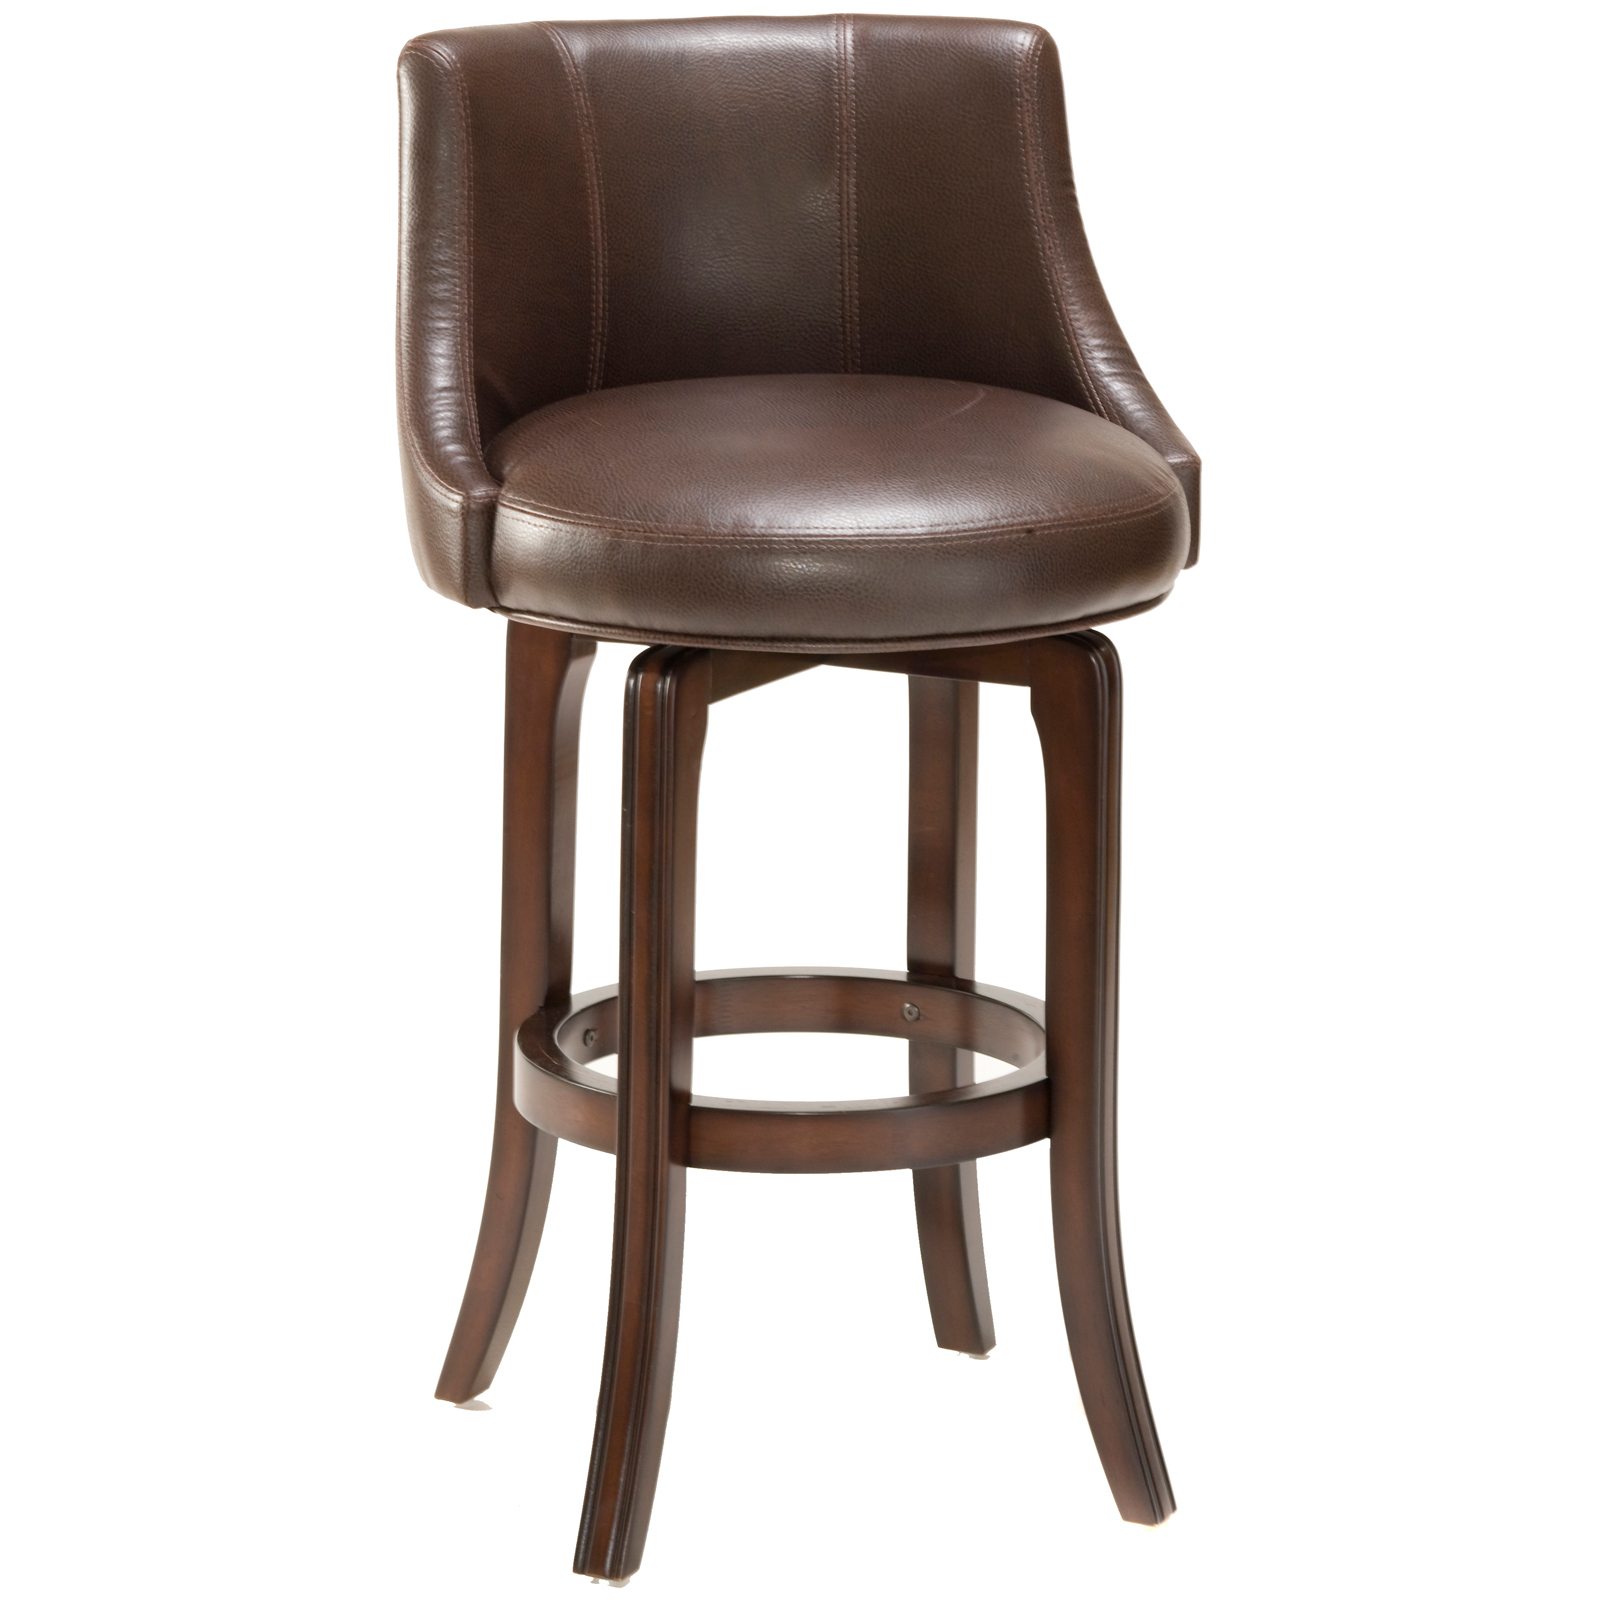 Hillsdale Napa Valley 25 In Swivel Counter Stool Brown Leather Seat At Hayneedle